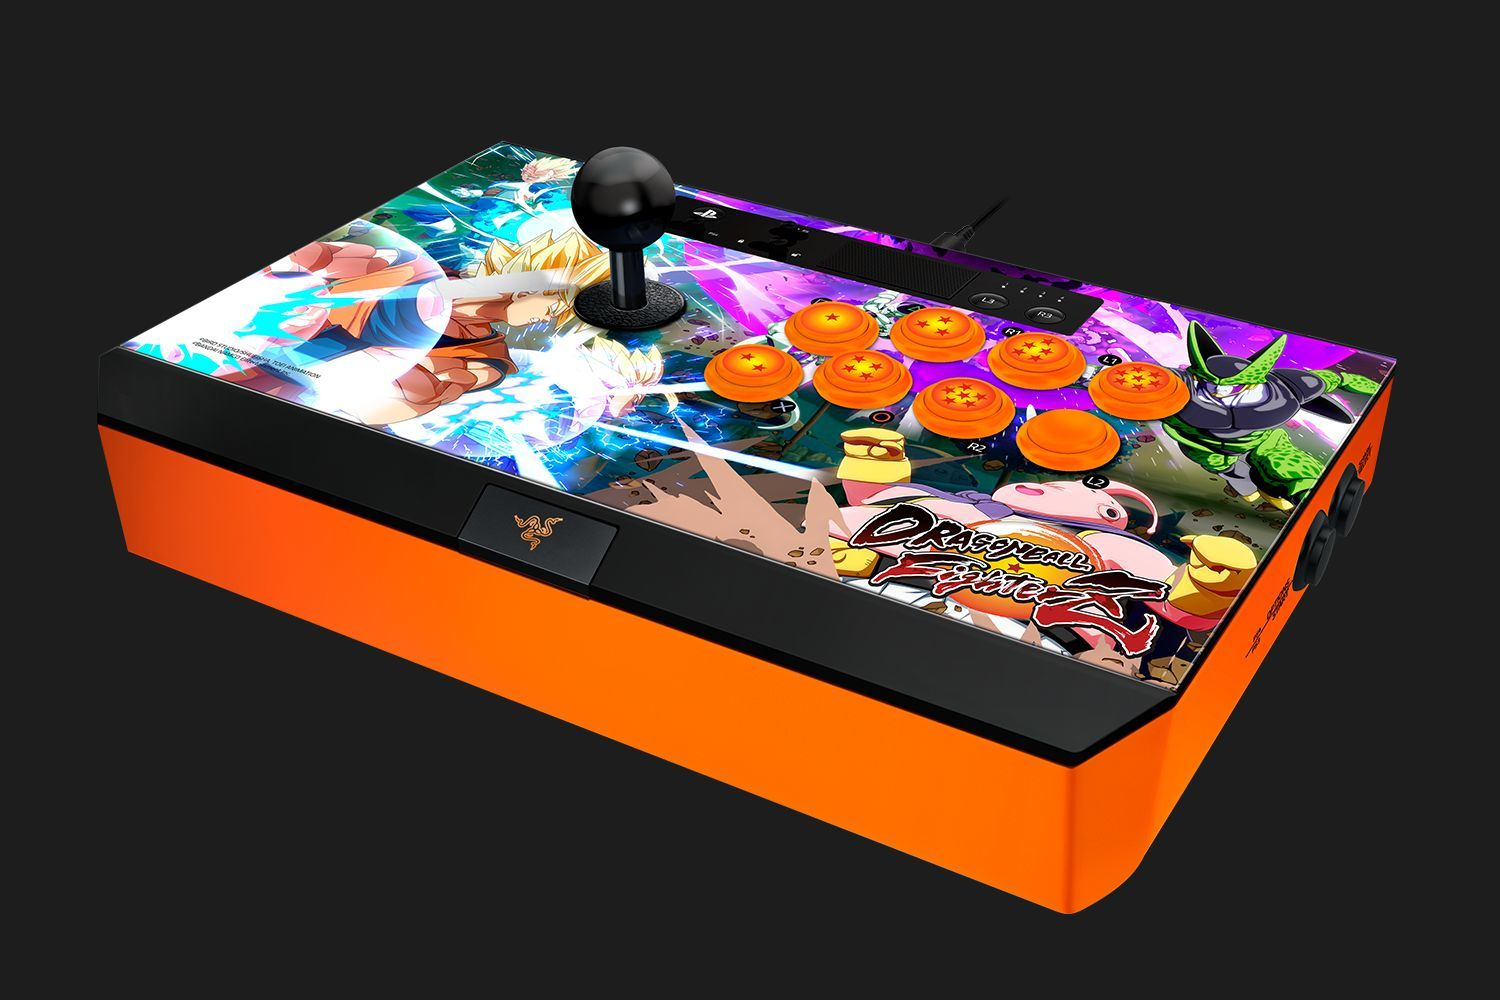 Dragon Ball Z Razer Panthera Fight Stick (PS4, PS3, PC) for PS4 image